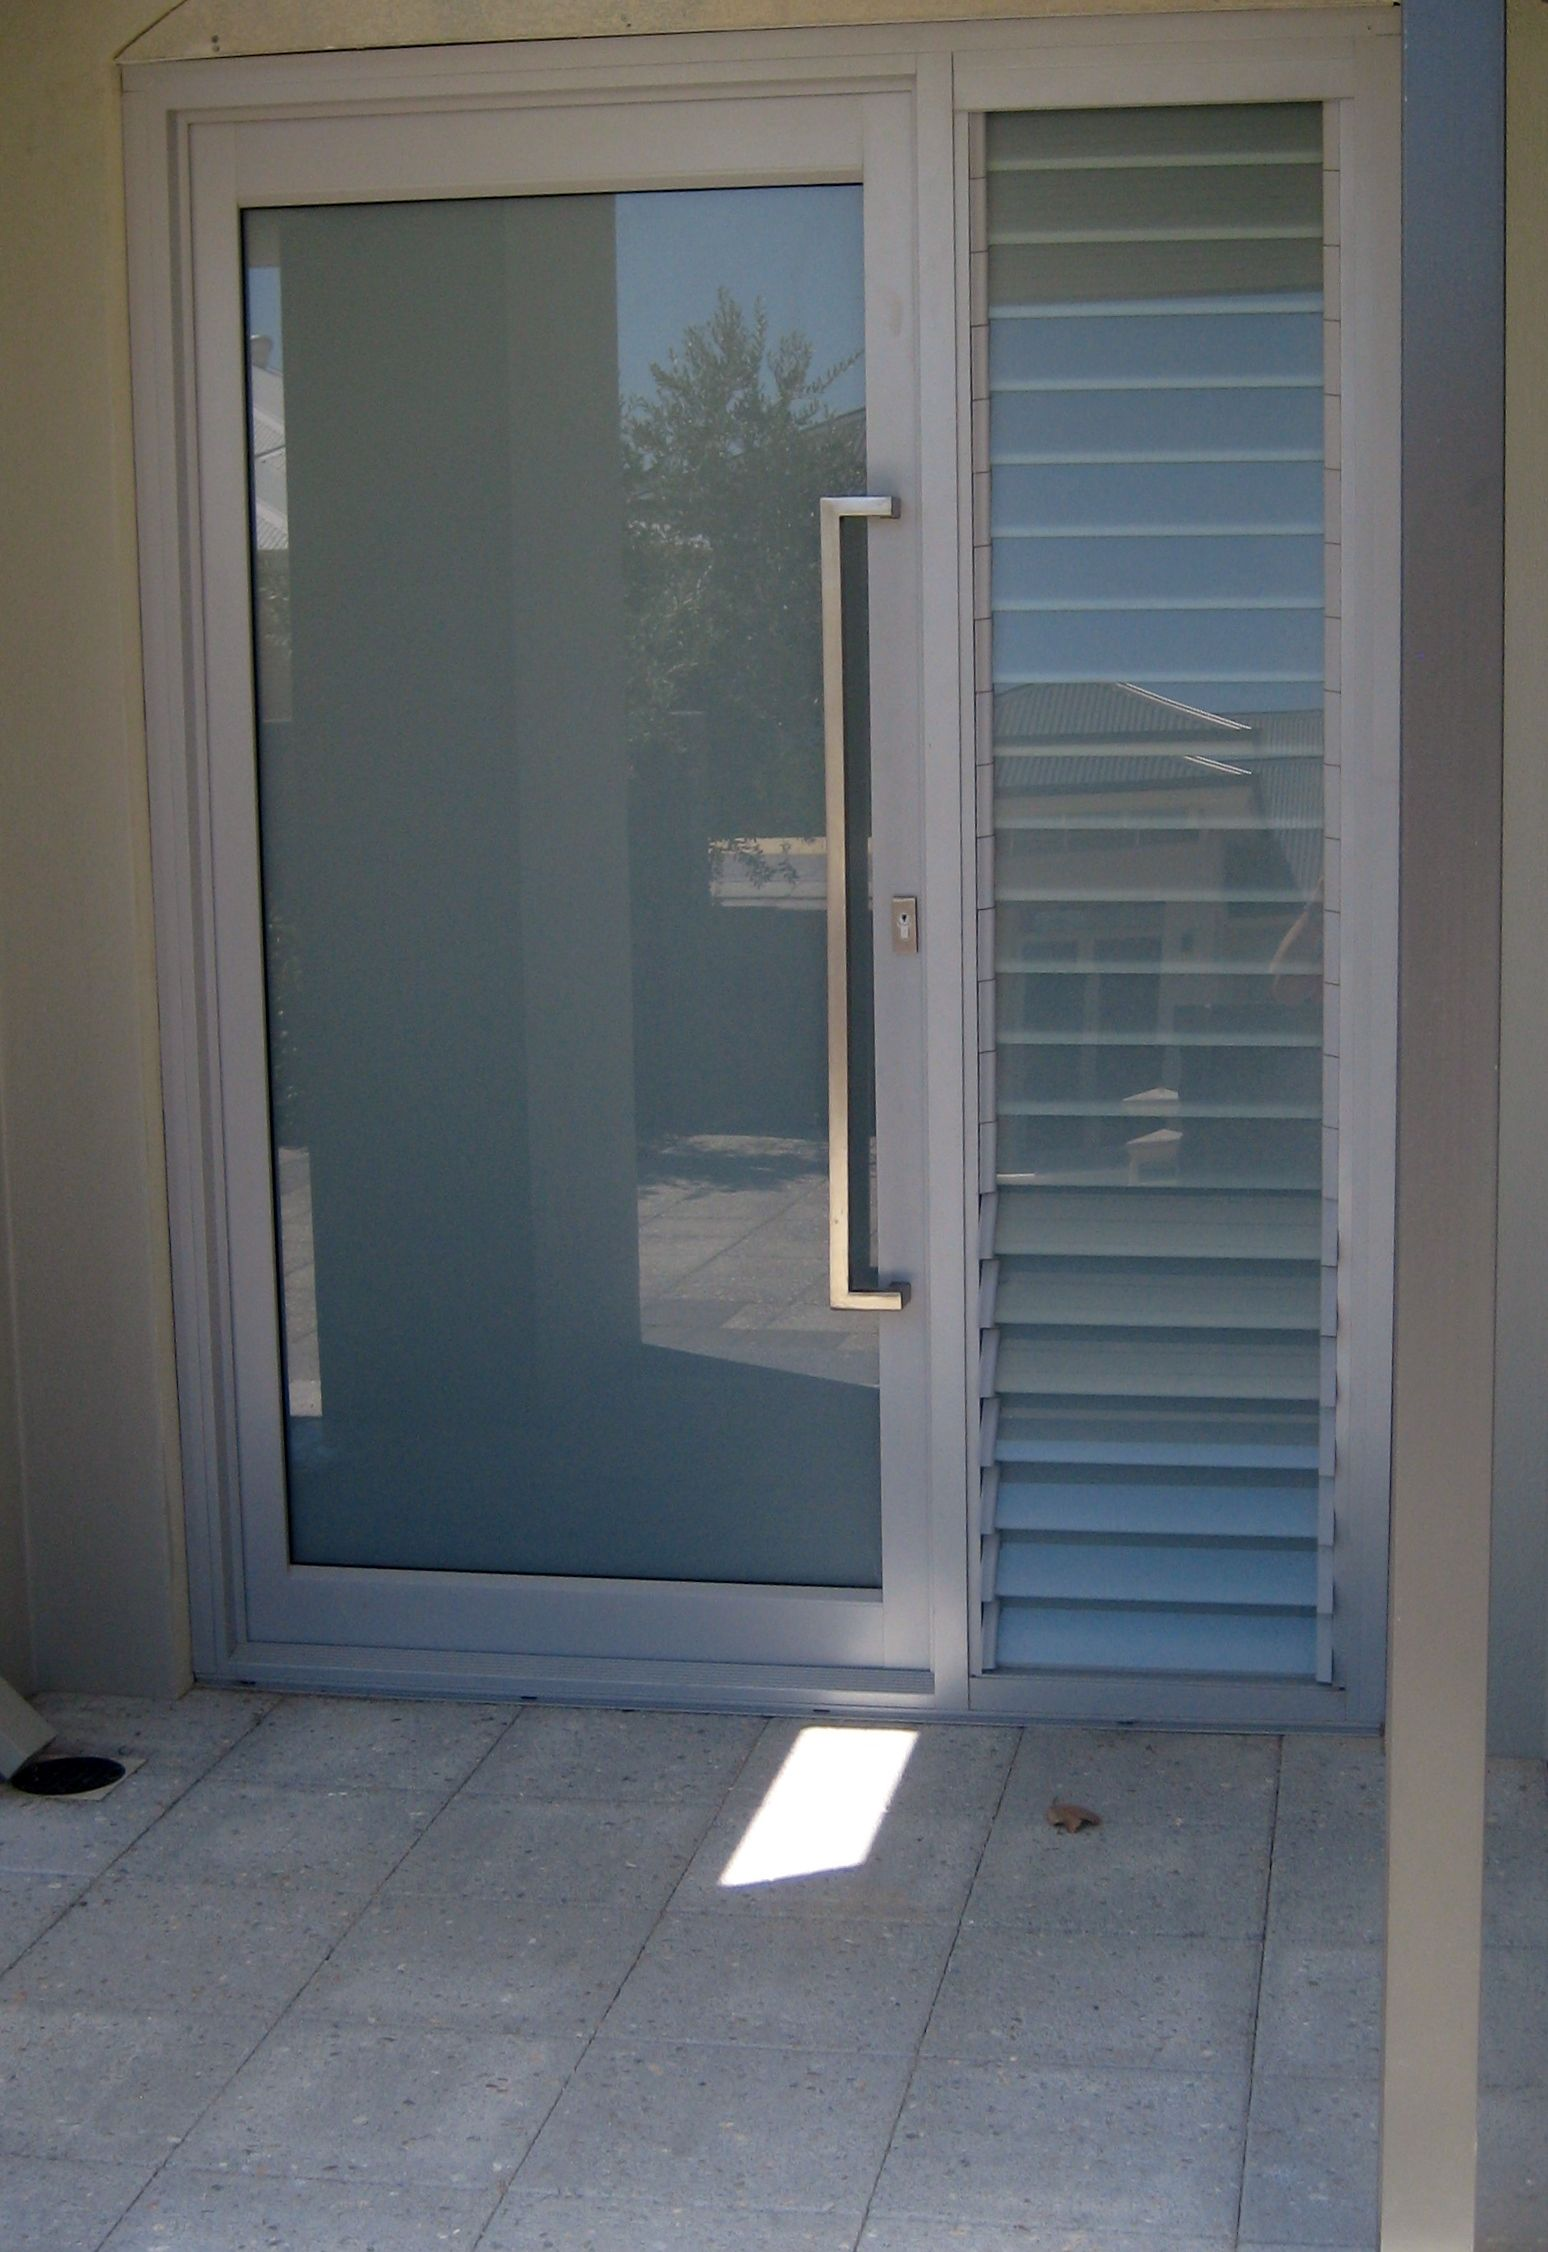 Aluminium glass entry doors google search study room front doors coloring pages front doors aluminium 141 aluminium modern entrance doors uk aluminium glass entry doors splendid front doors aluminium rubansaba